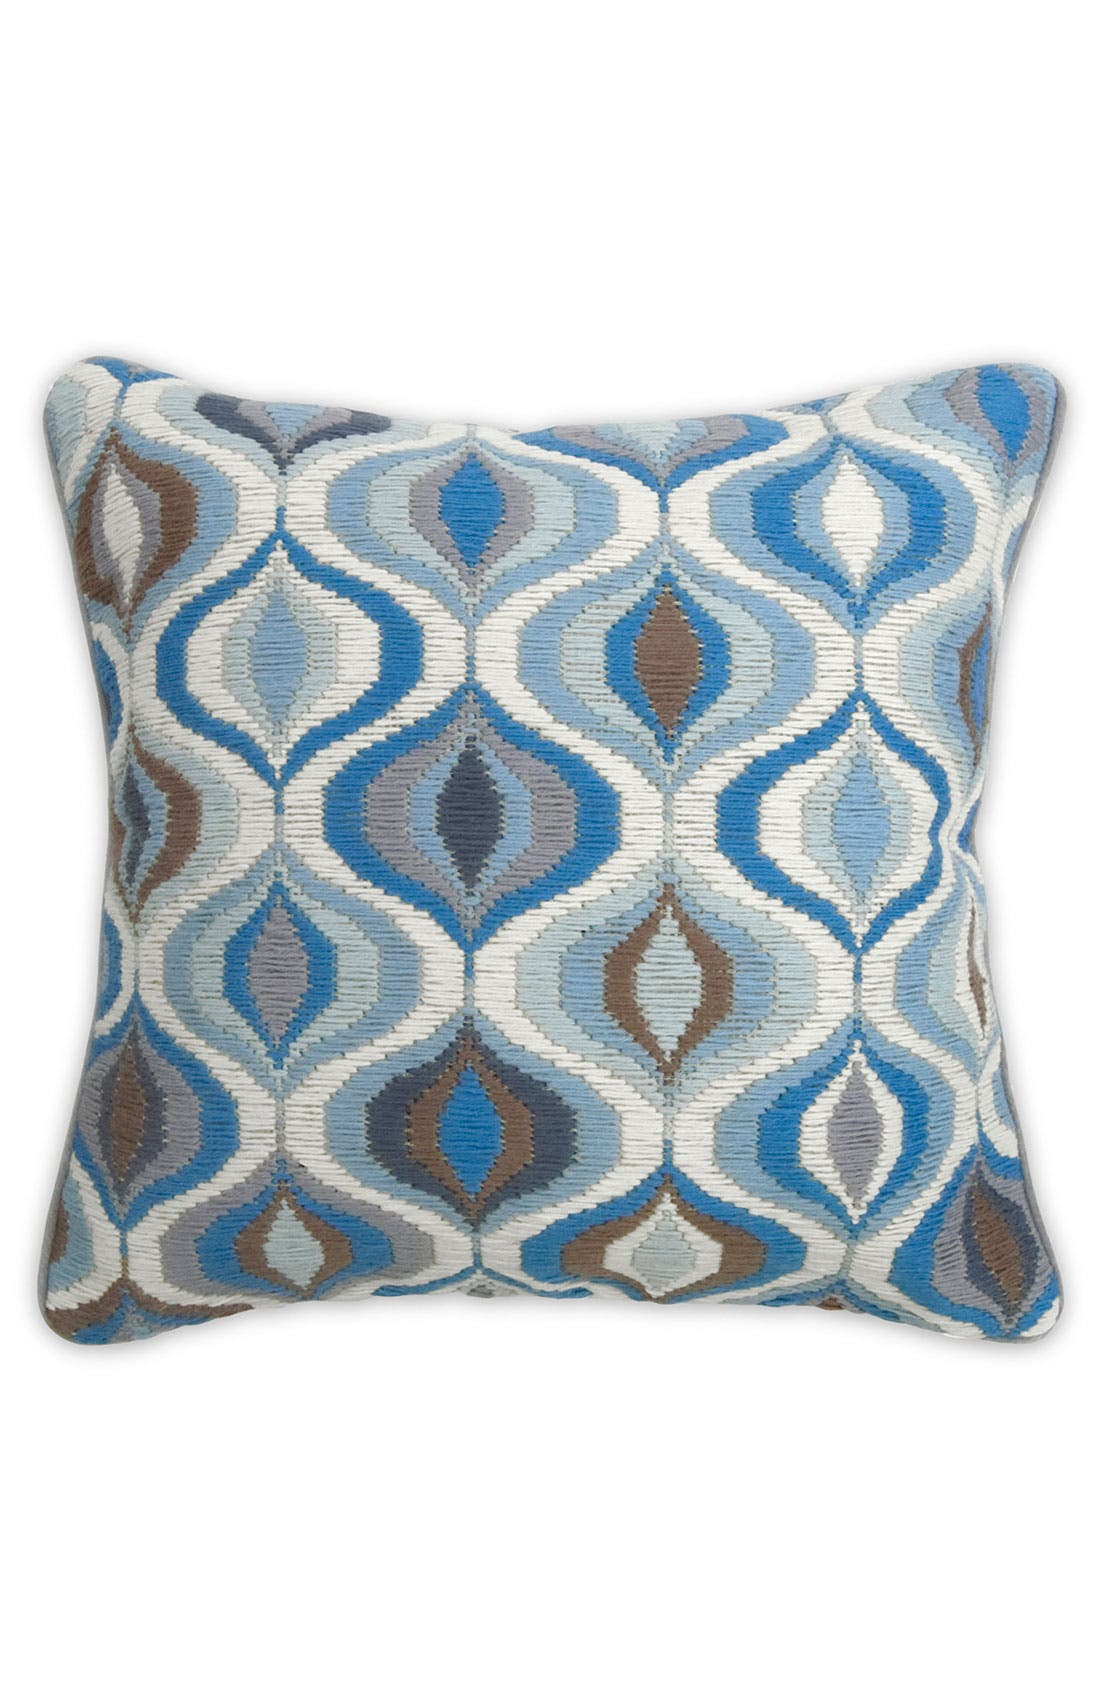 Alternate Image 1 Selected - Jonathan Adler 'Bargello Waves' Pillow